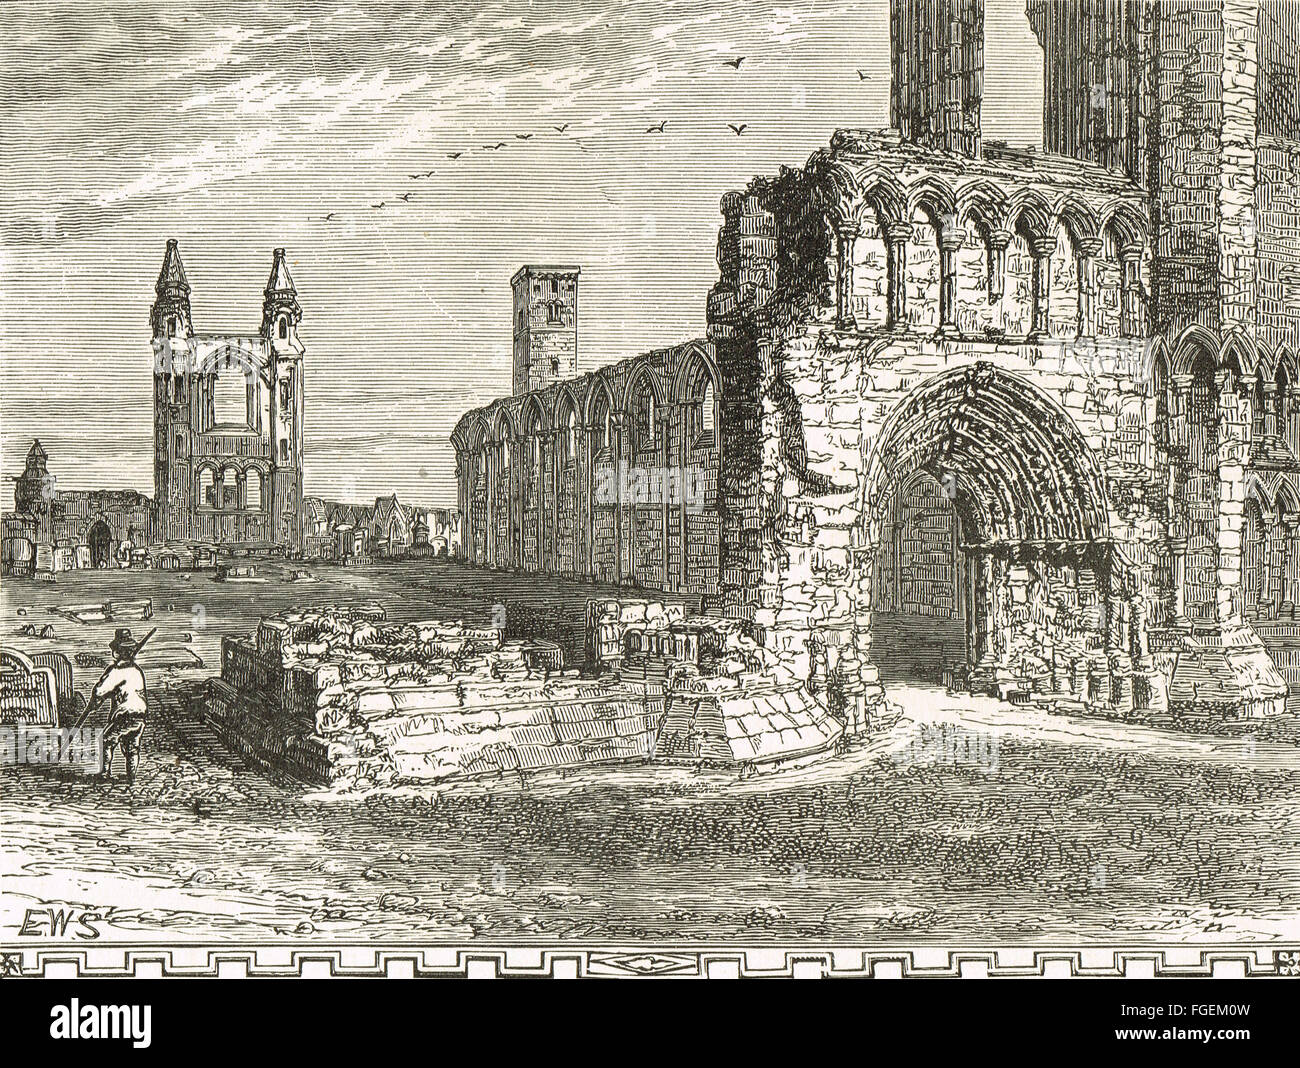 19th century engraving St Andrews Cathedral, Fife, Scotland - Stock Image